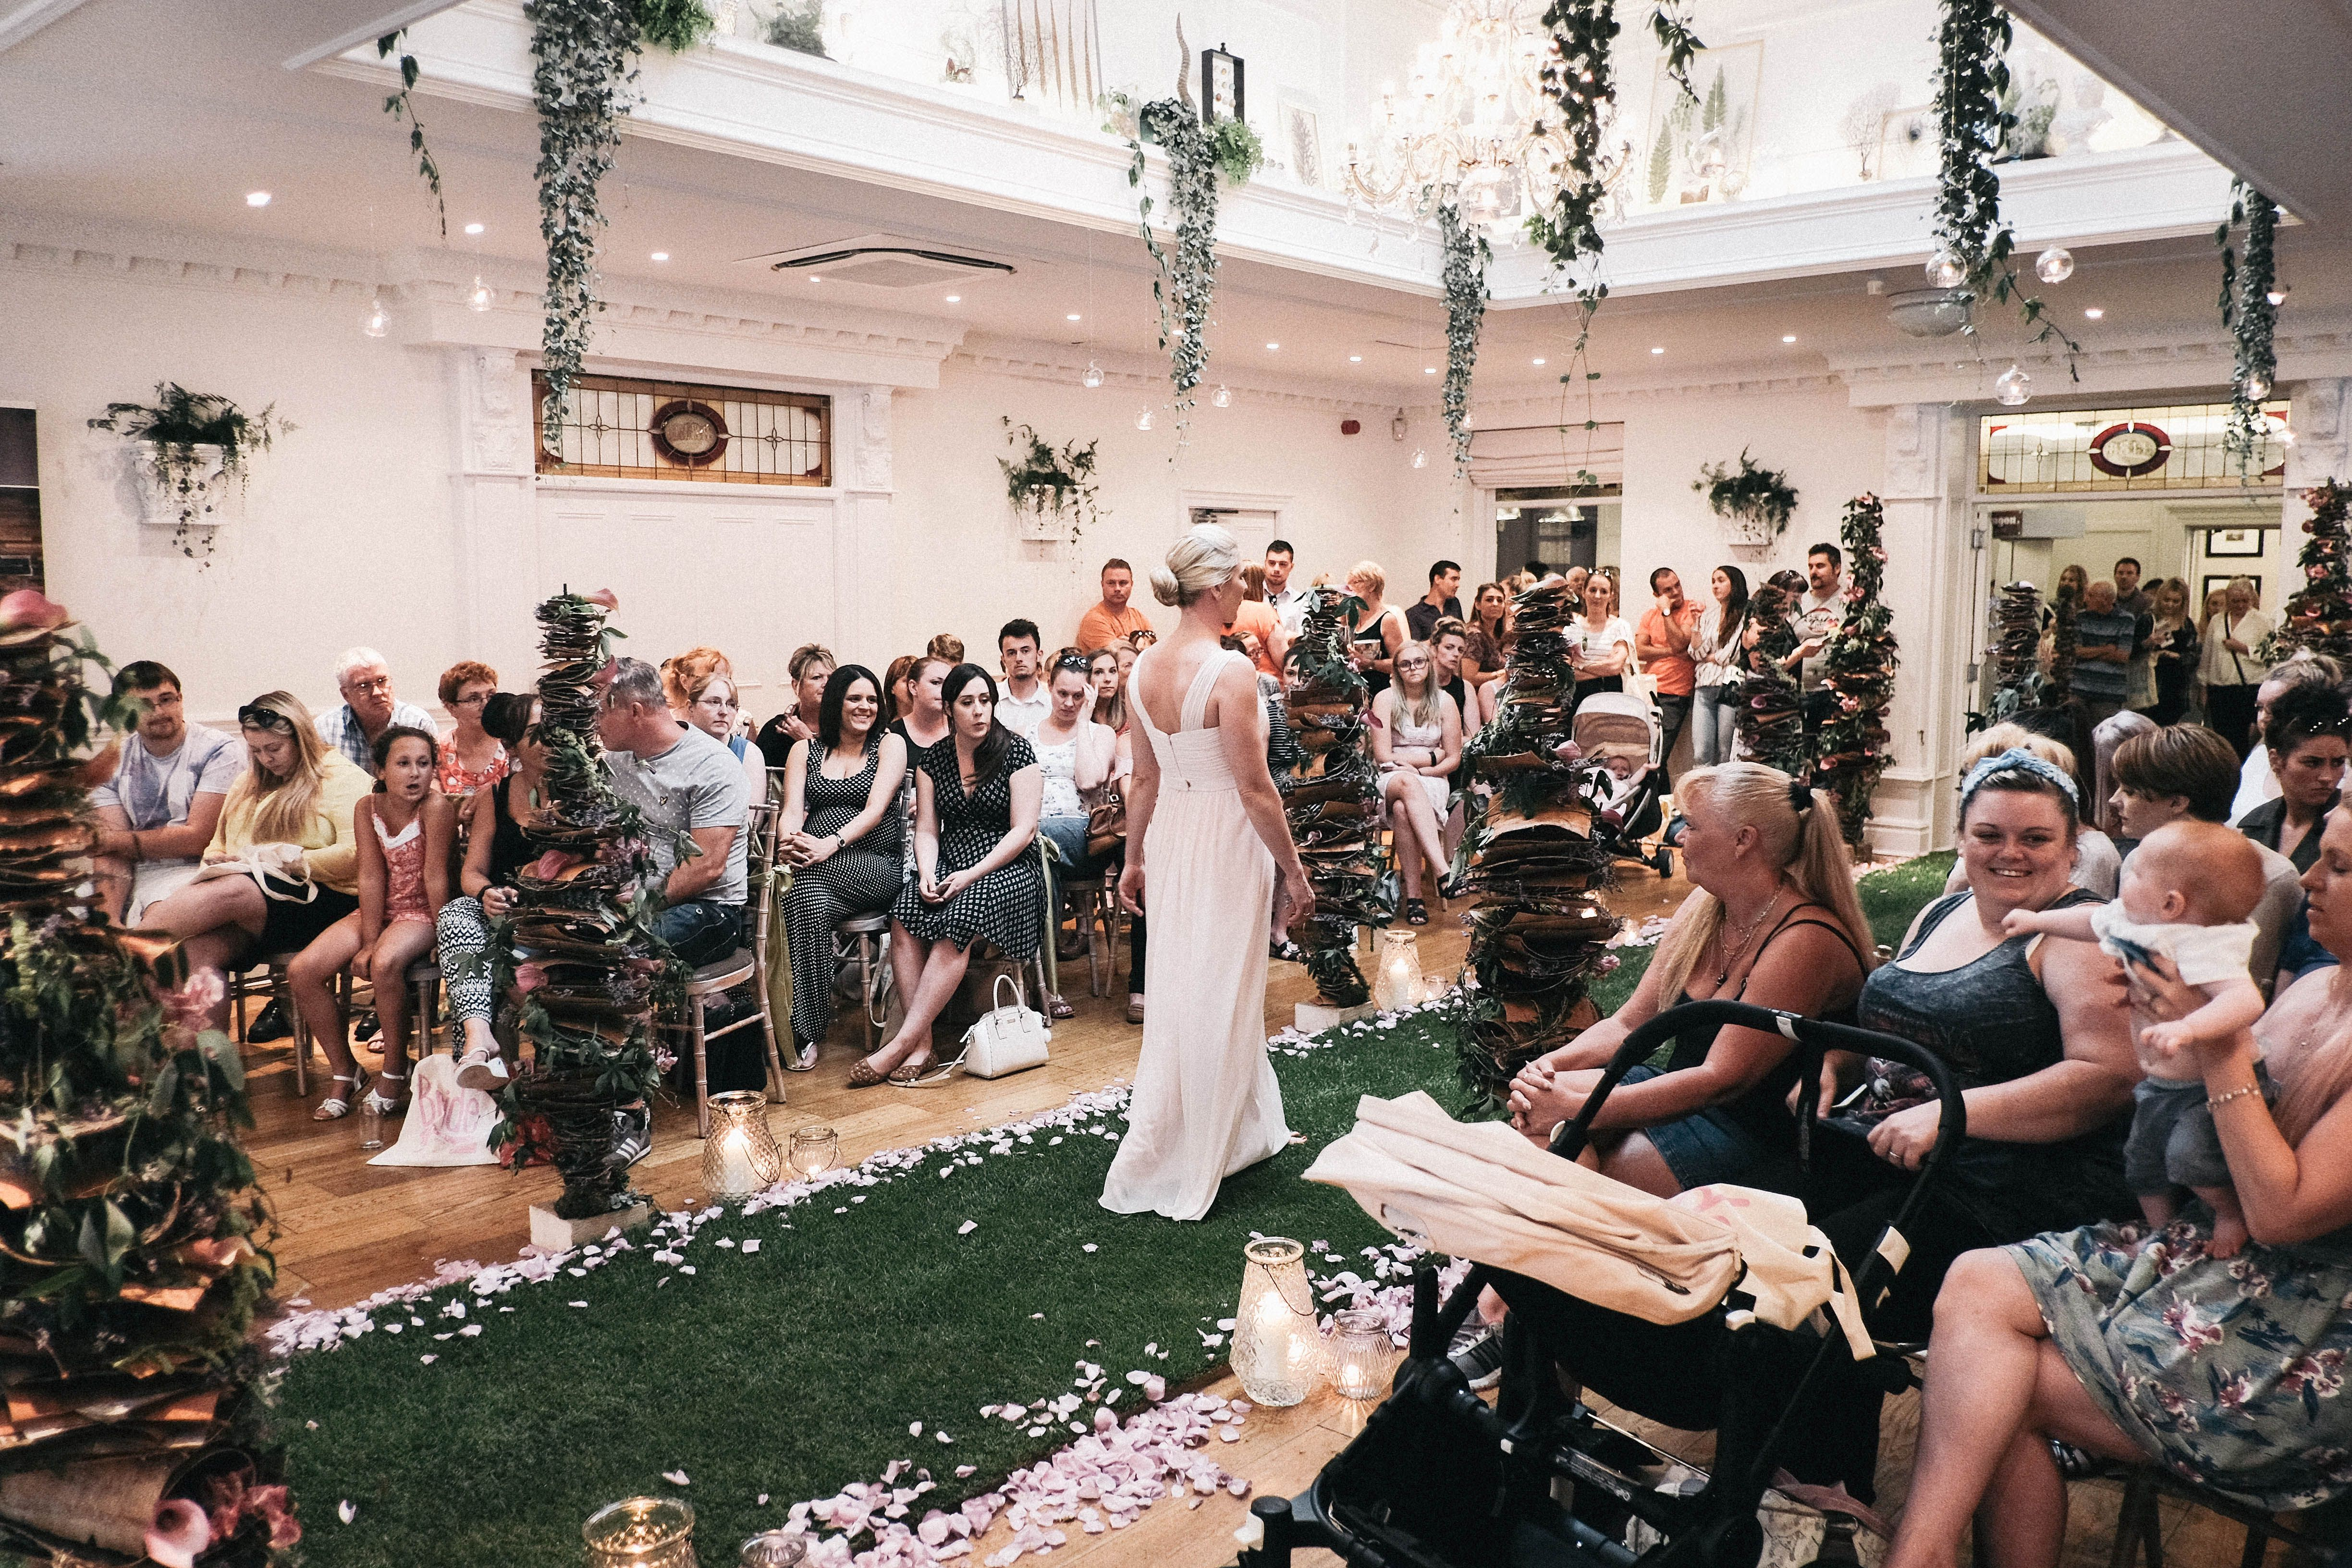 The amazing catwalk by @onefinedaybride at our recent @lwblittlewhite wedding open evening. Dressed by @paragonflowers complete with REAL GRASS aisle!!